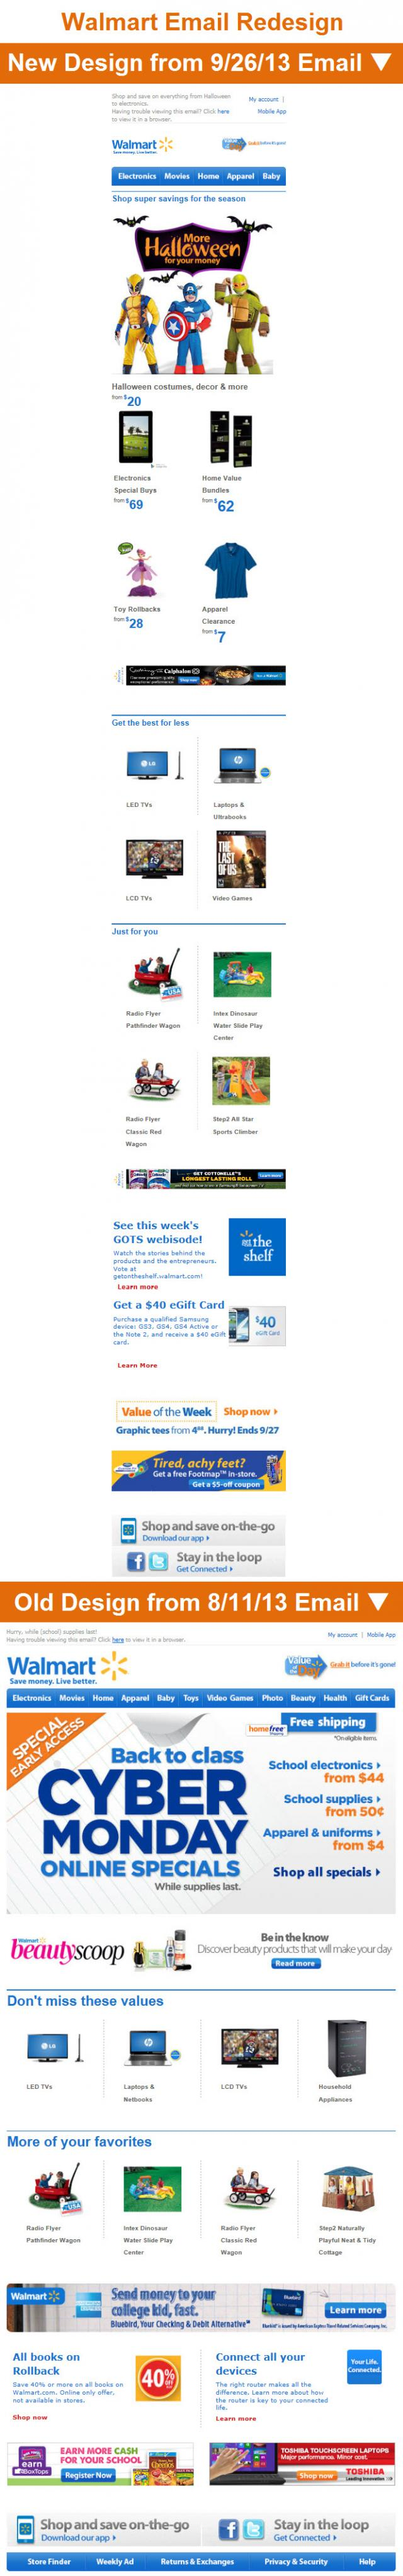 Walmart Email Redesign